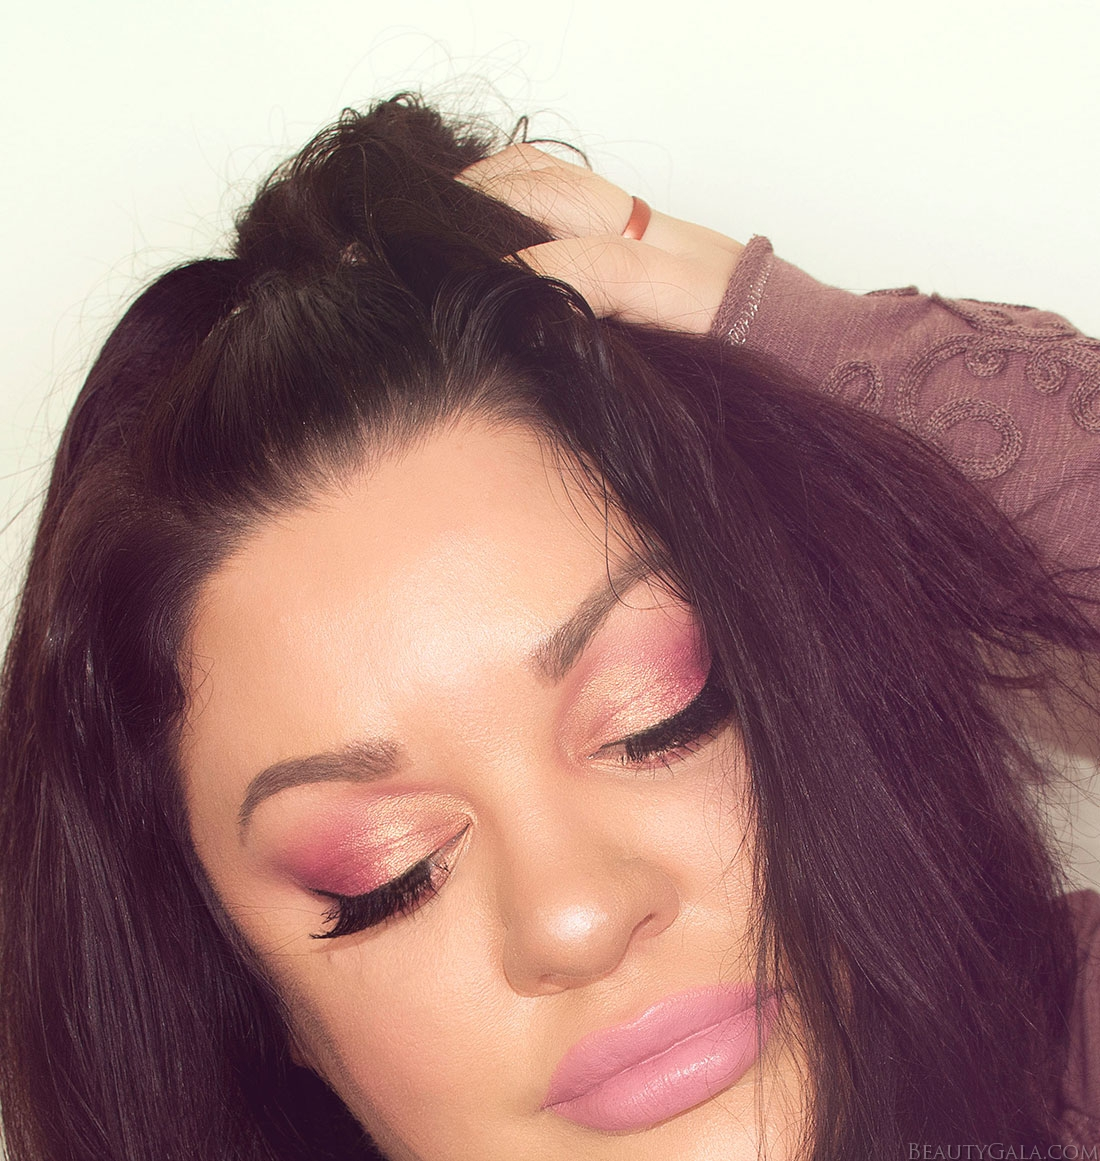 huda beauty rose gold palette, huda beauty rose gold, rose gold eyeshadow, rose gold makeup, nars longwear natural radiant foundation, benefit bad gal bang, benefit bad gal bang mascara,